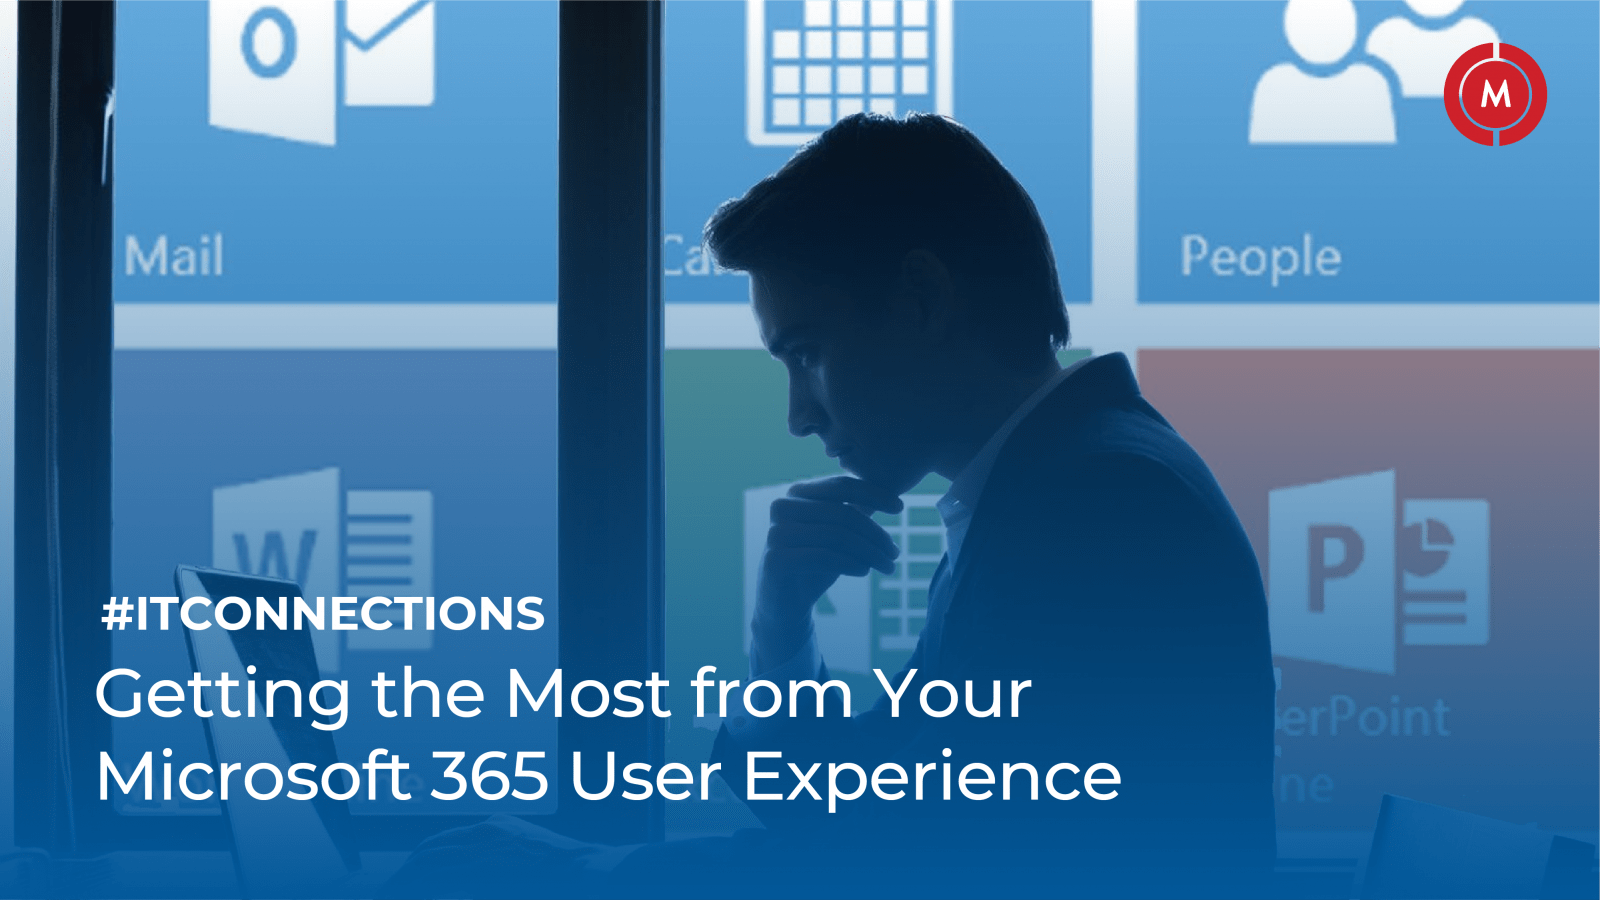 Getting the most from your Microsoft 365 user experience